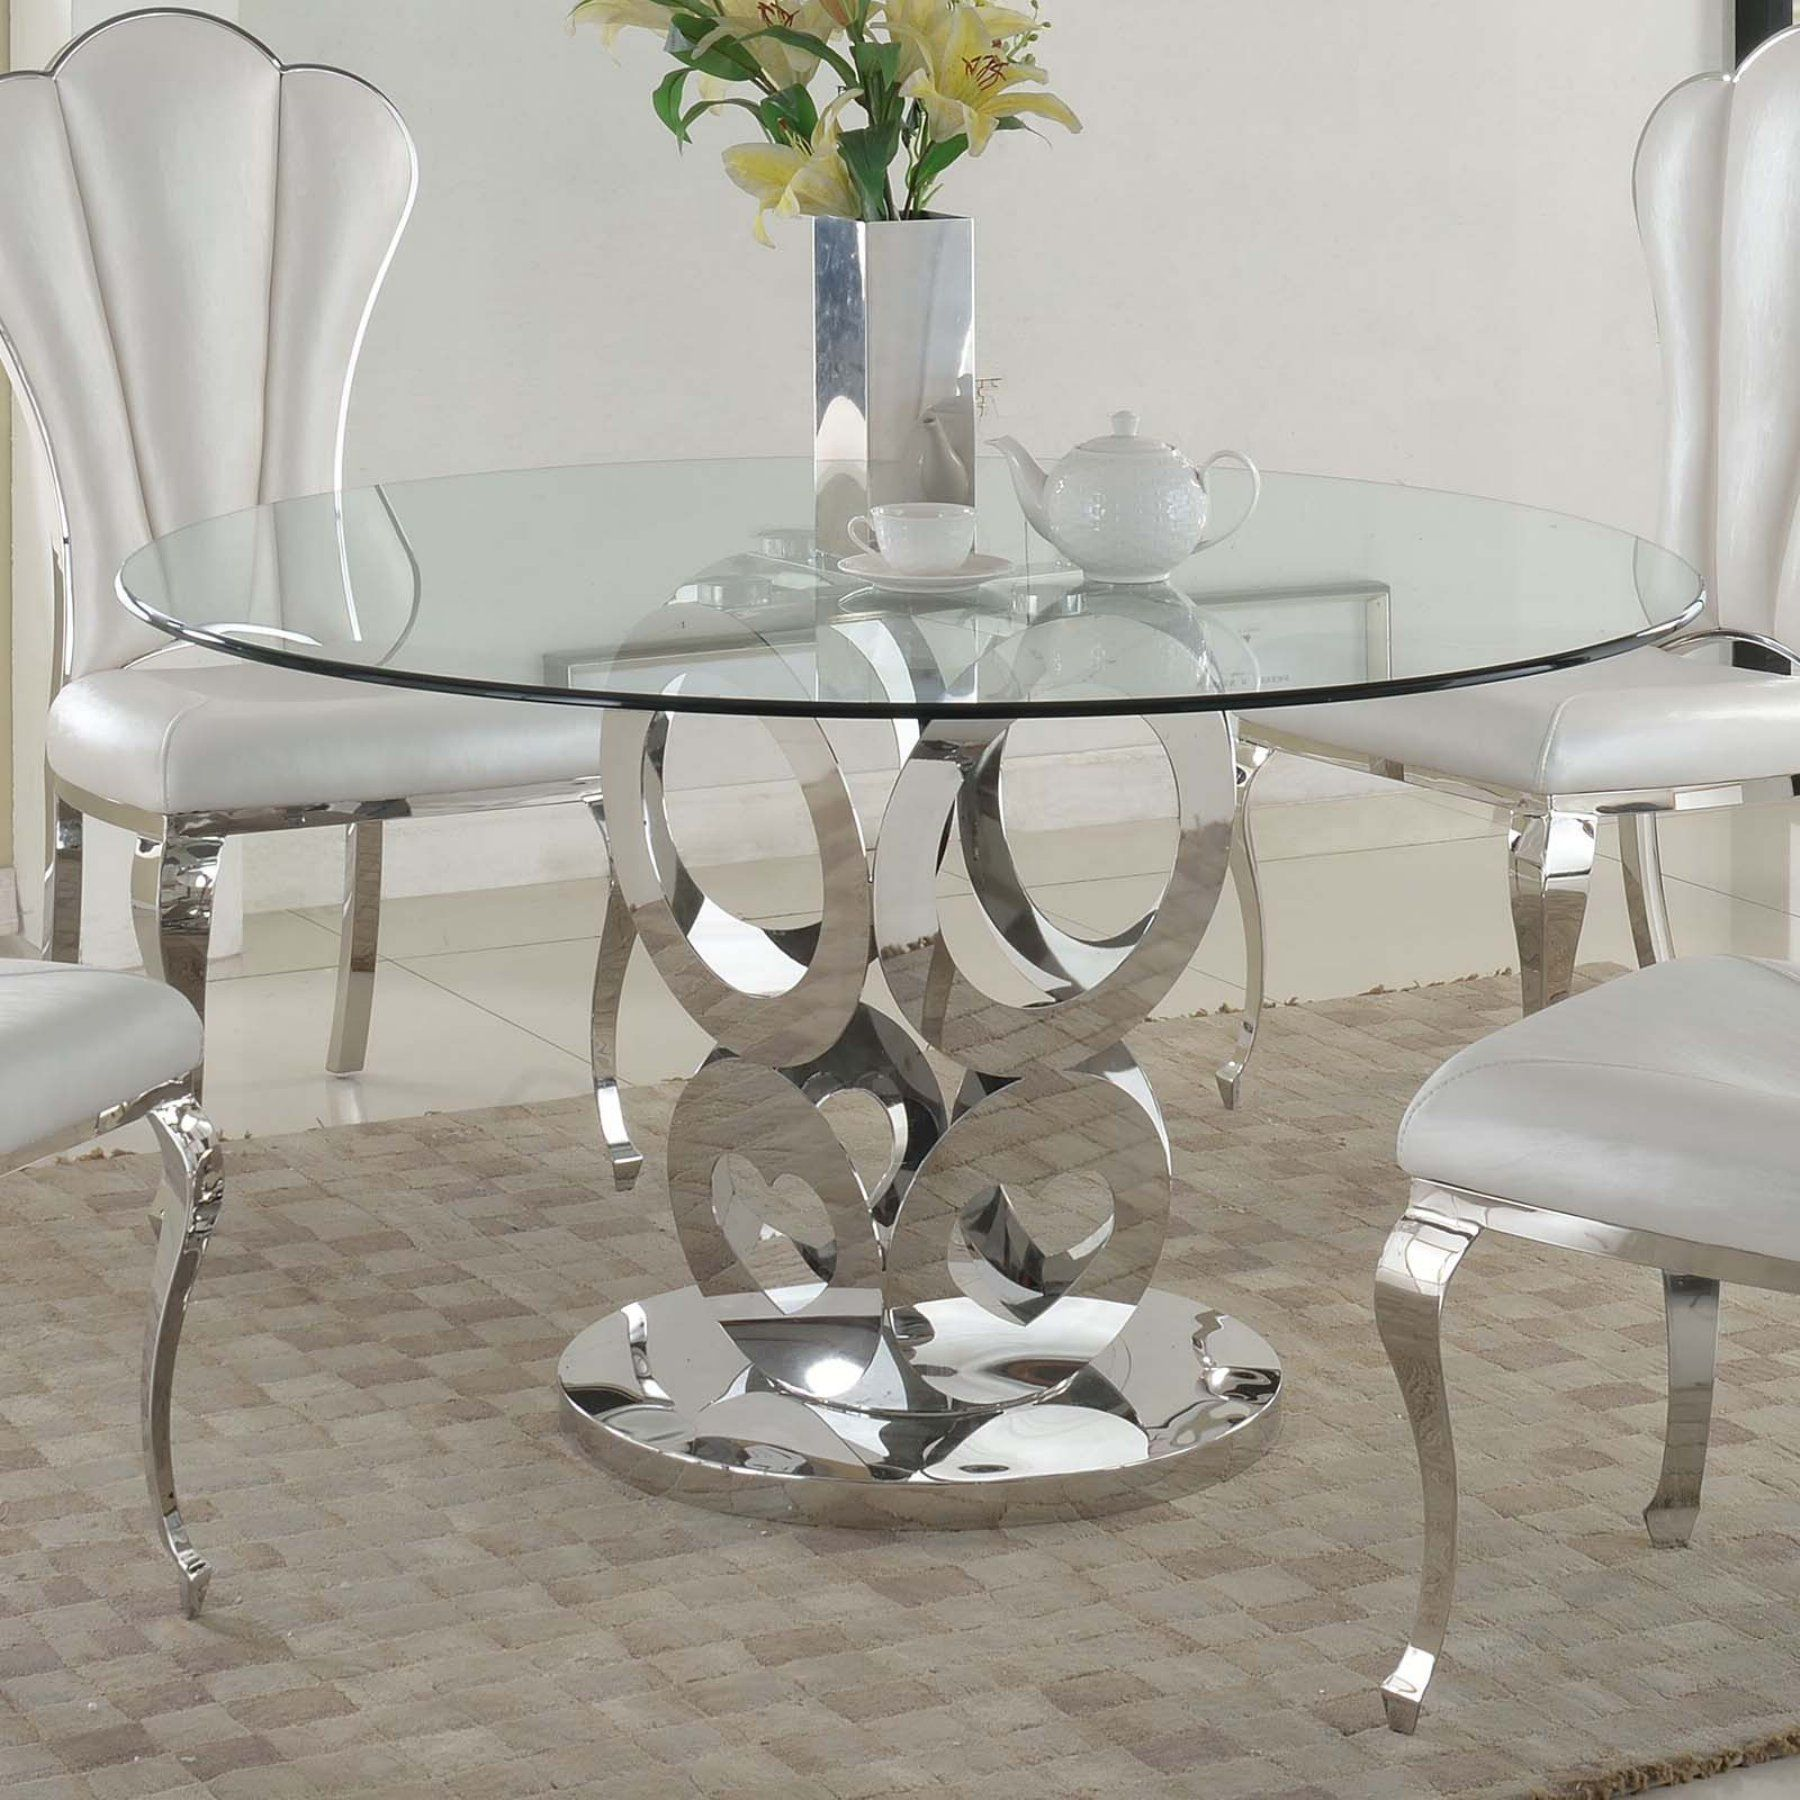 Chintaly Raegan Round Glass Topped Dining Table Cty2034 In 2020